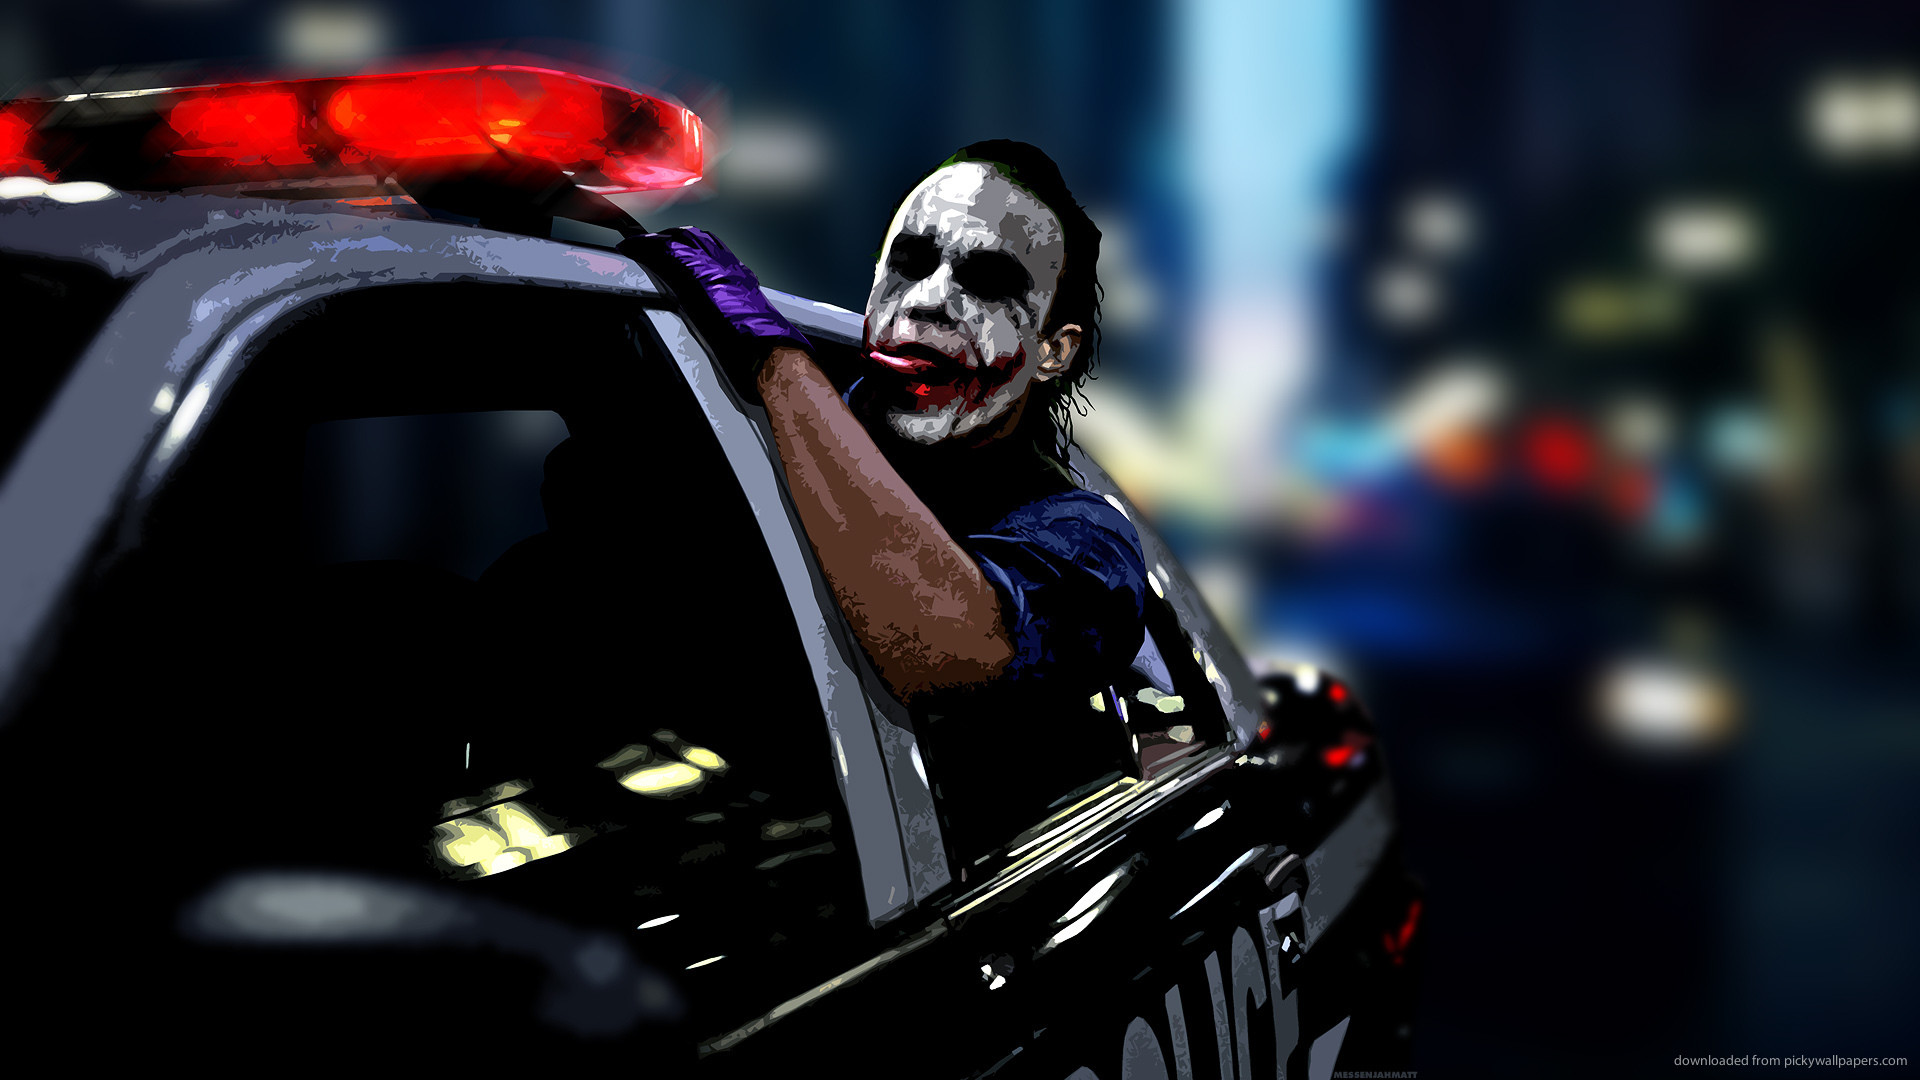 Police Wallpaper Backgrounds 58 Images Email This Blogthis Share To Twitter Facebook 1920x1080